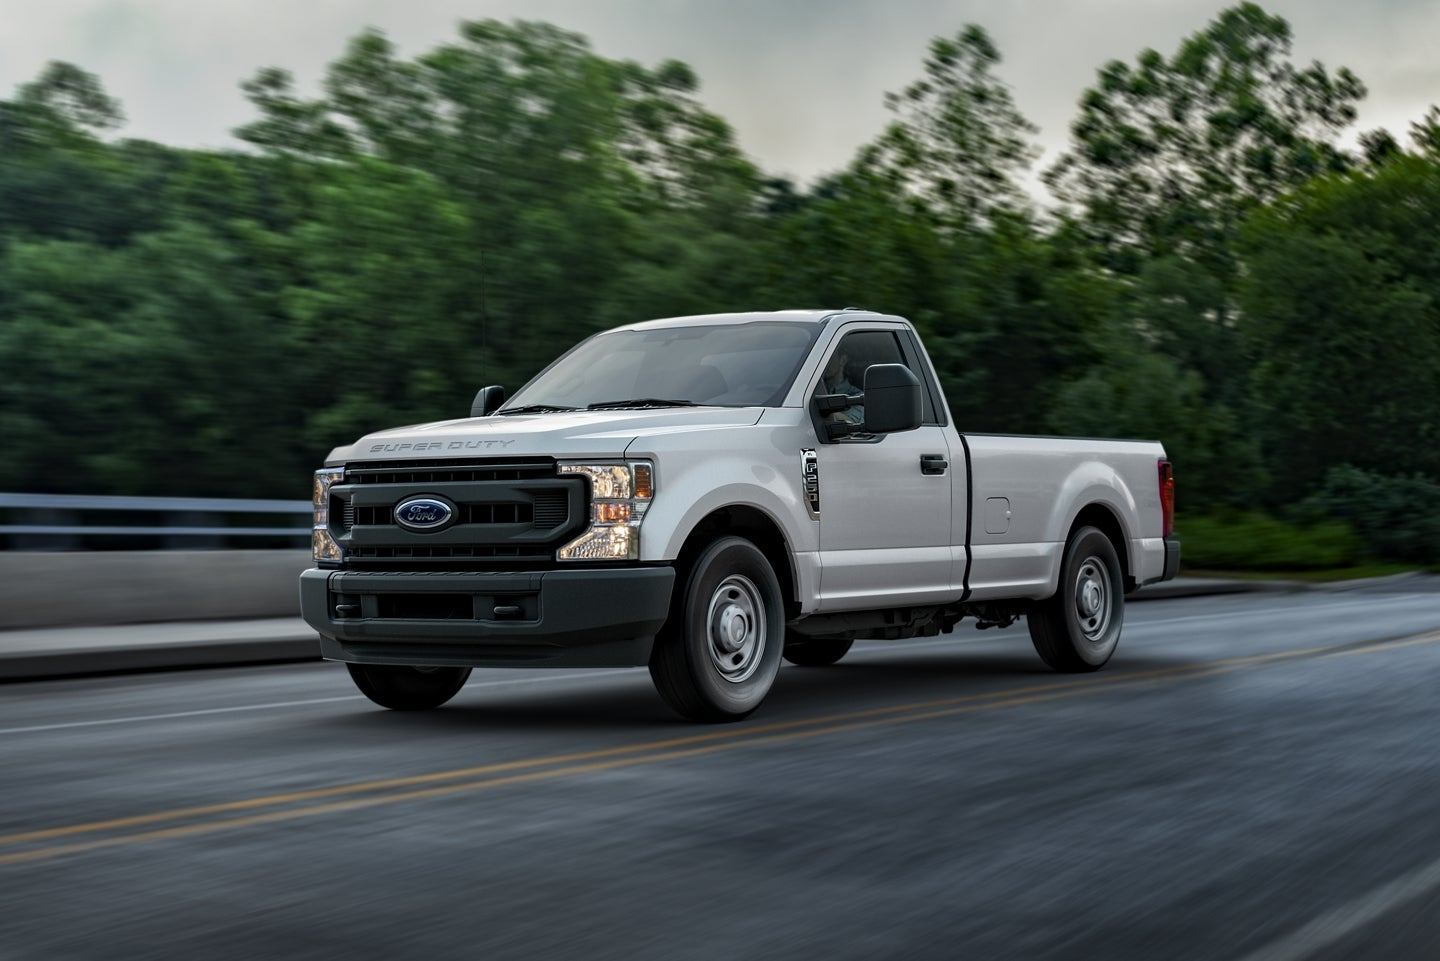 2020 Ford F-250 Configurations